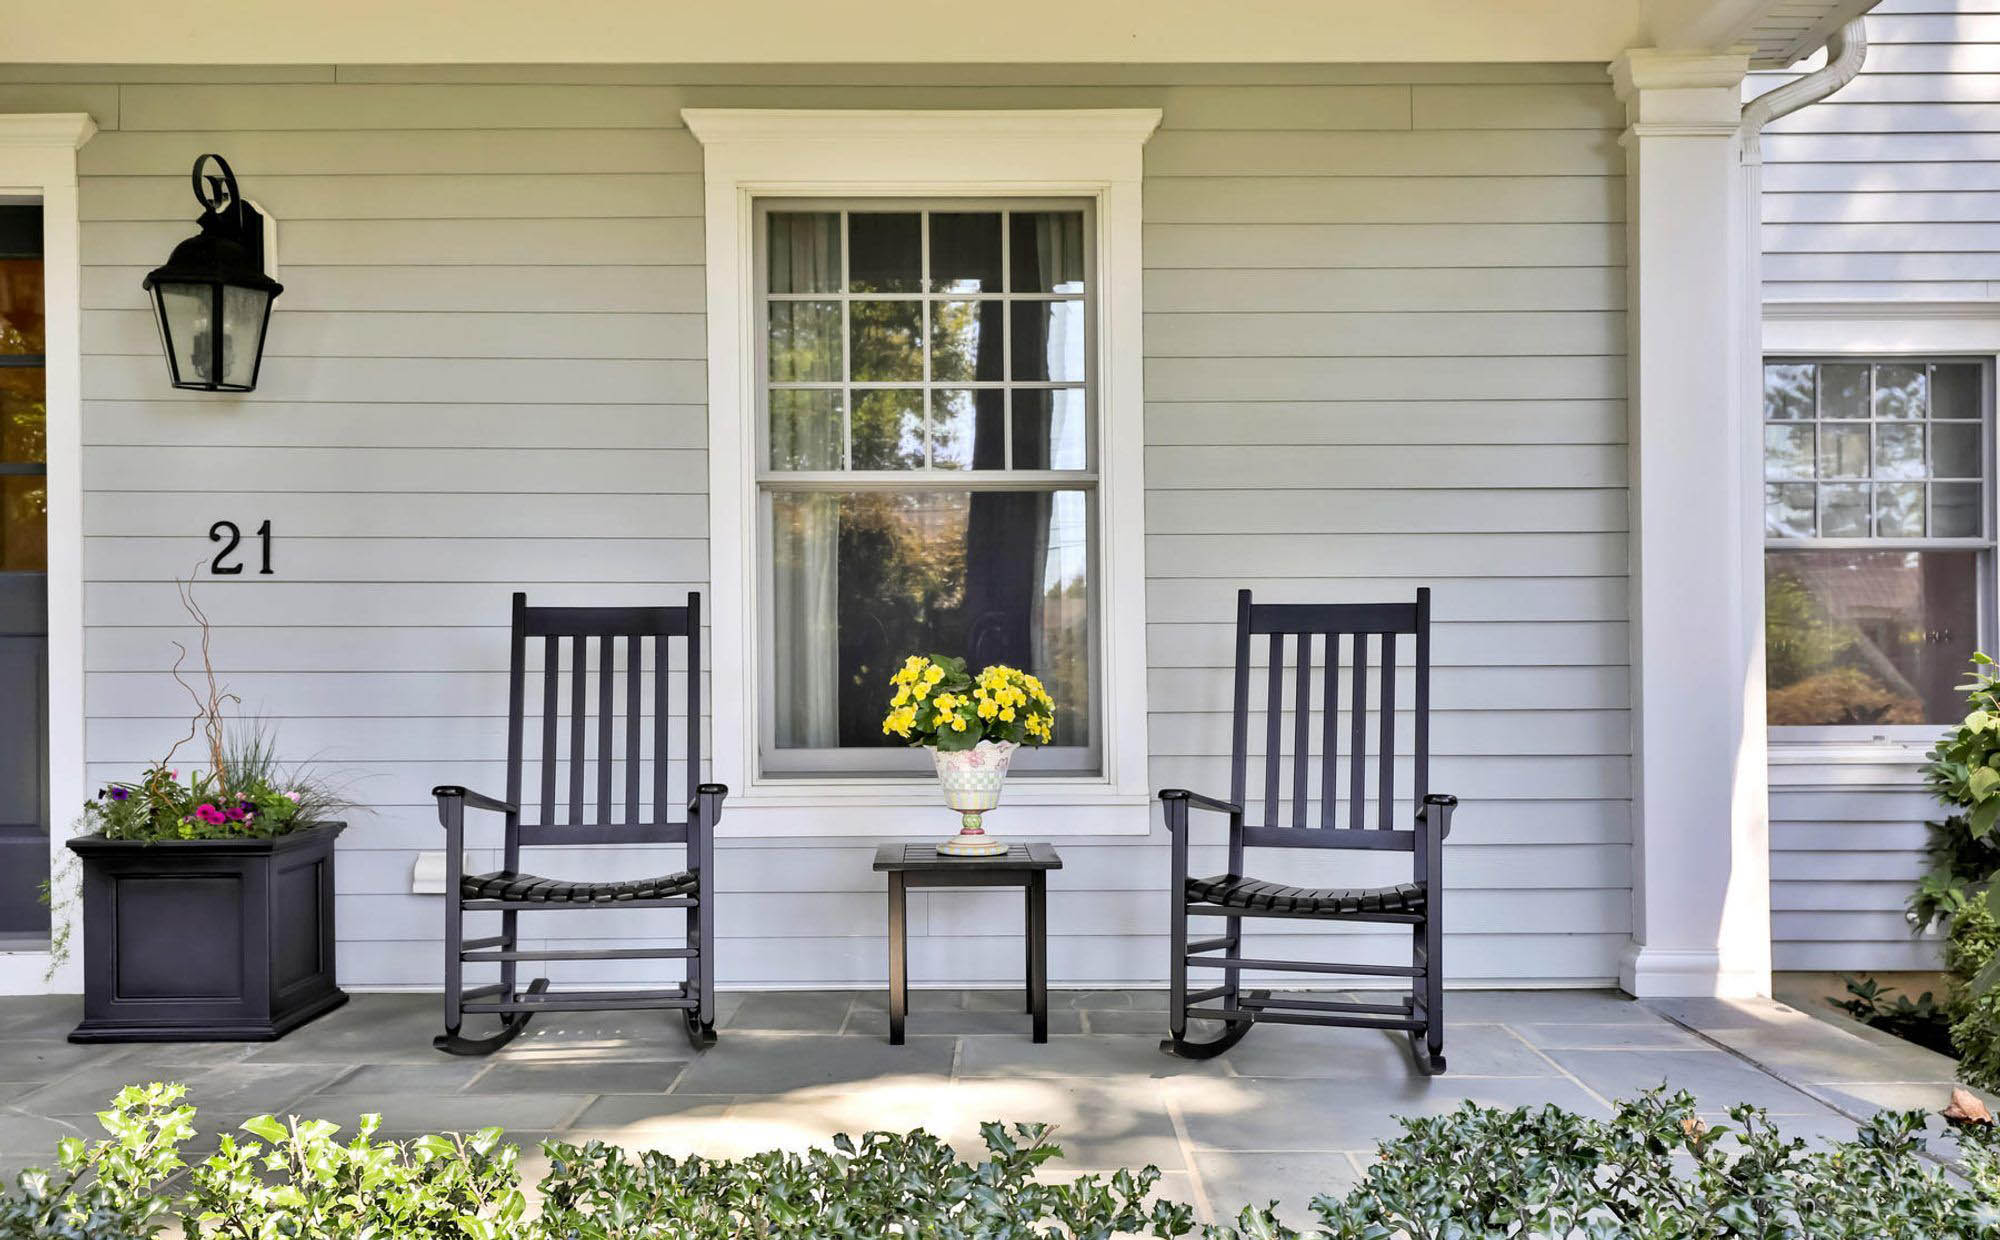 cheap patio furniture ideas. Simple outdoor black rocking chairs, table and planters. Porch plants.